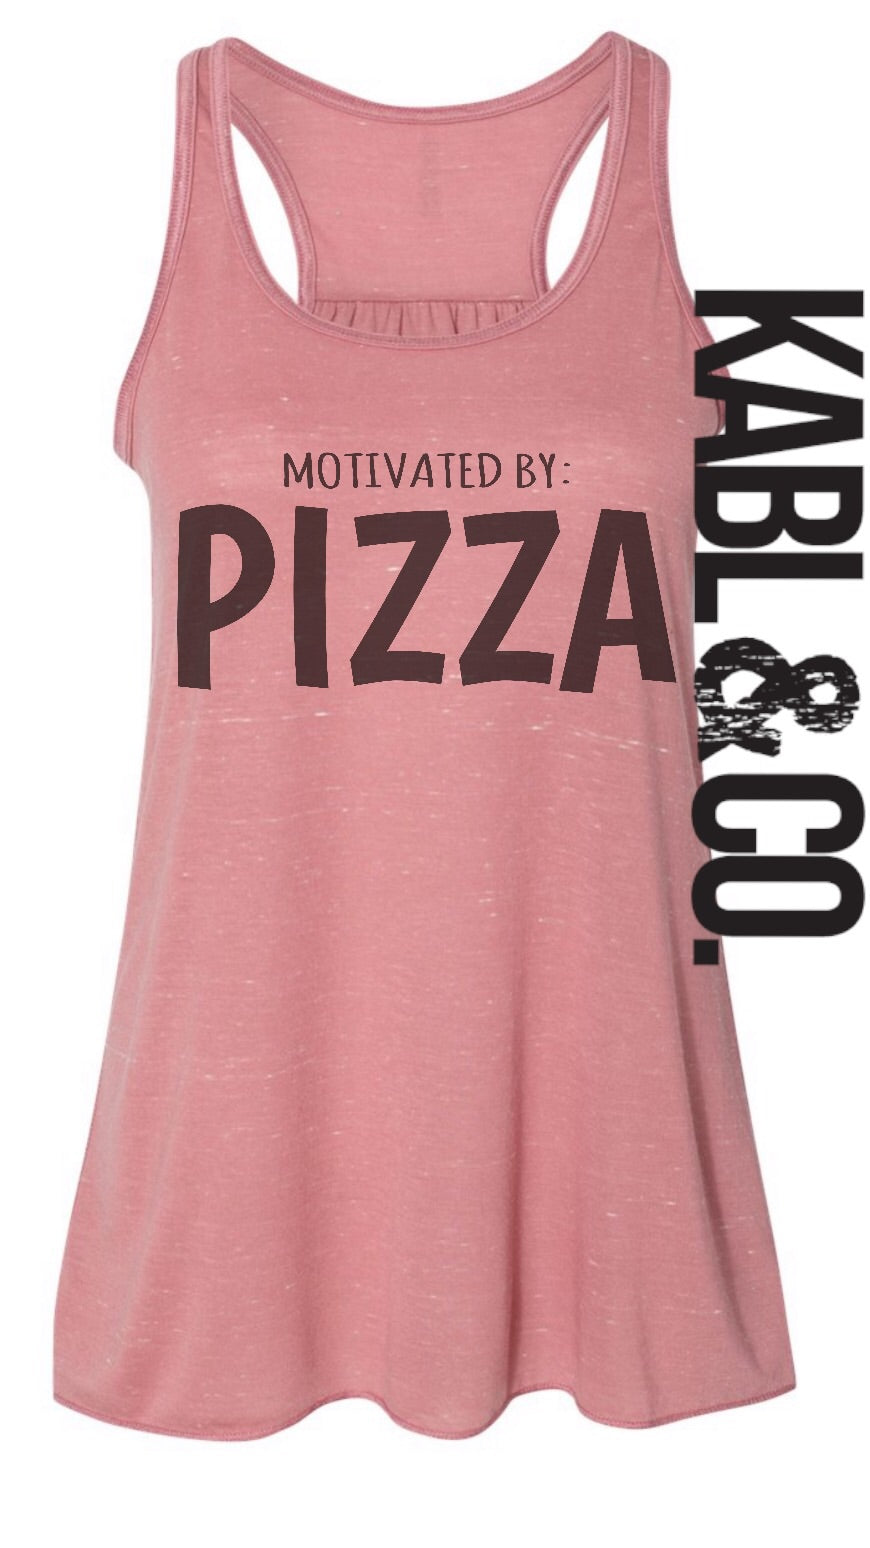 MOTIVATED BY PIZZA